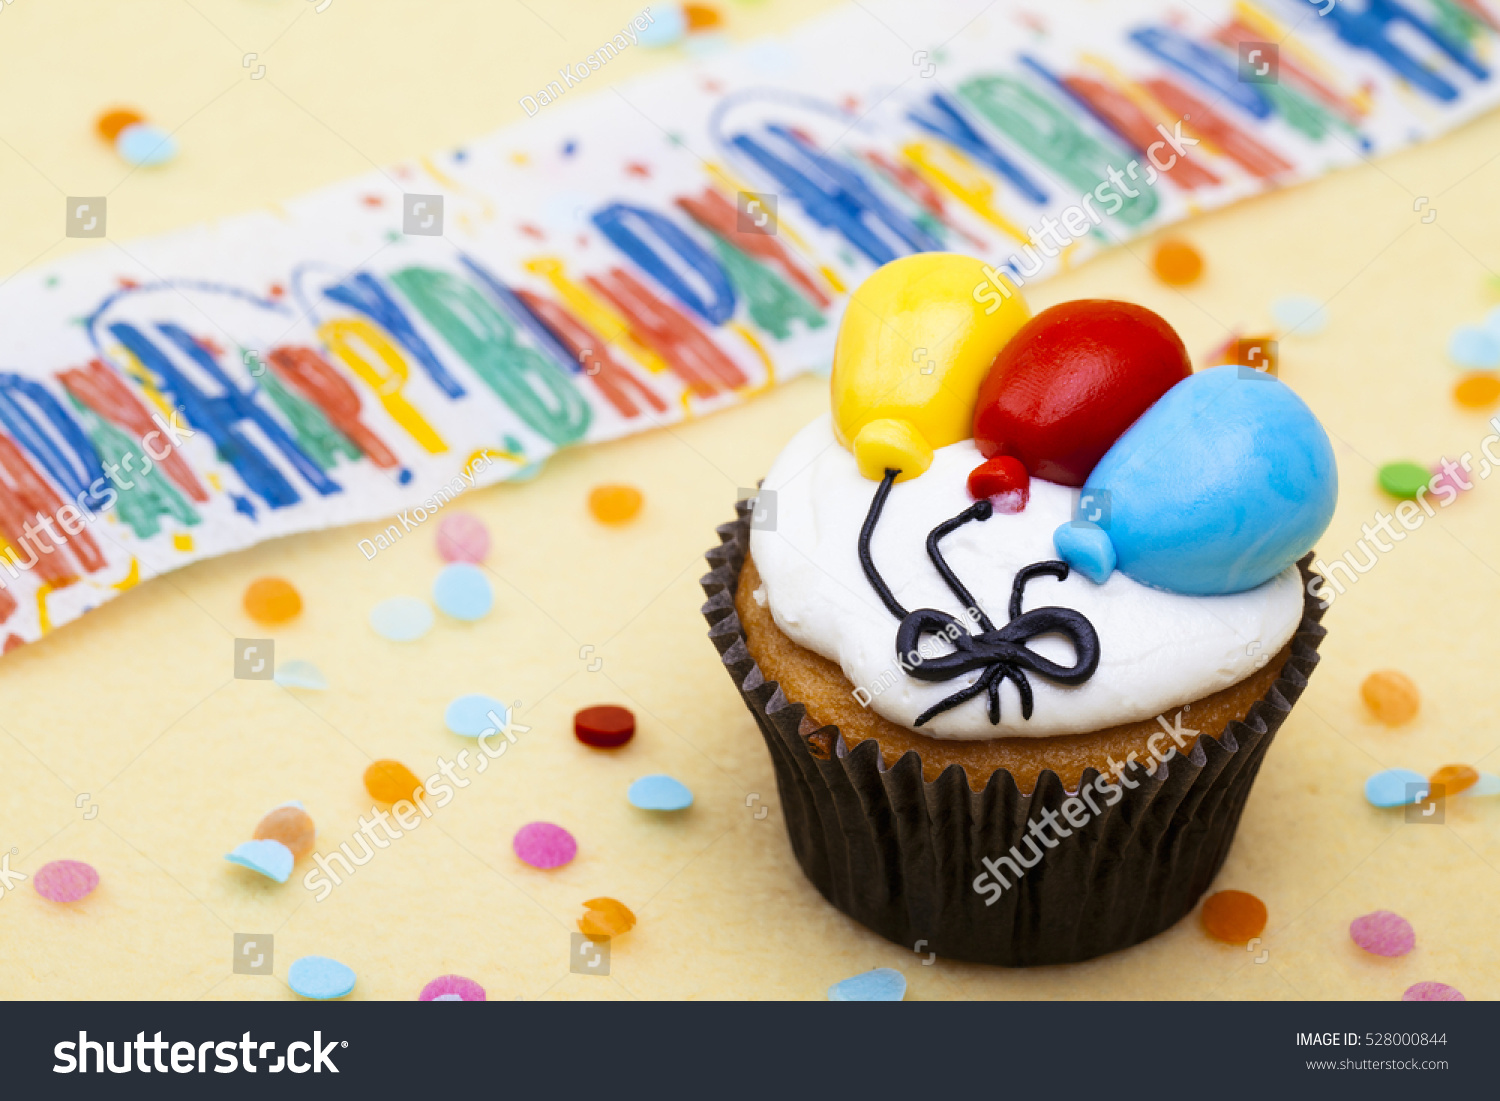 Celebration Cupcakes With Sprinkles And Balloons Isolated